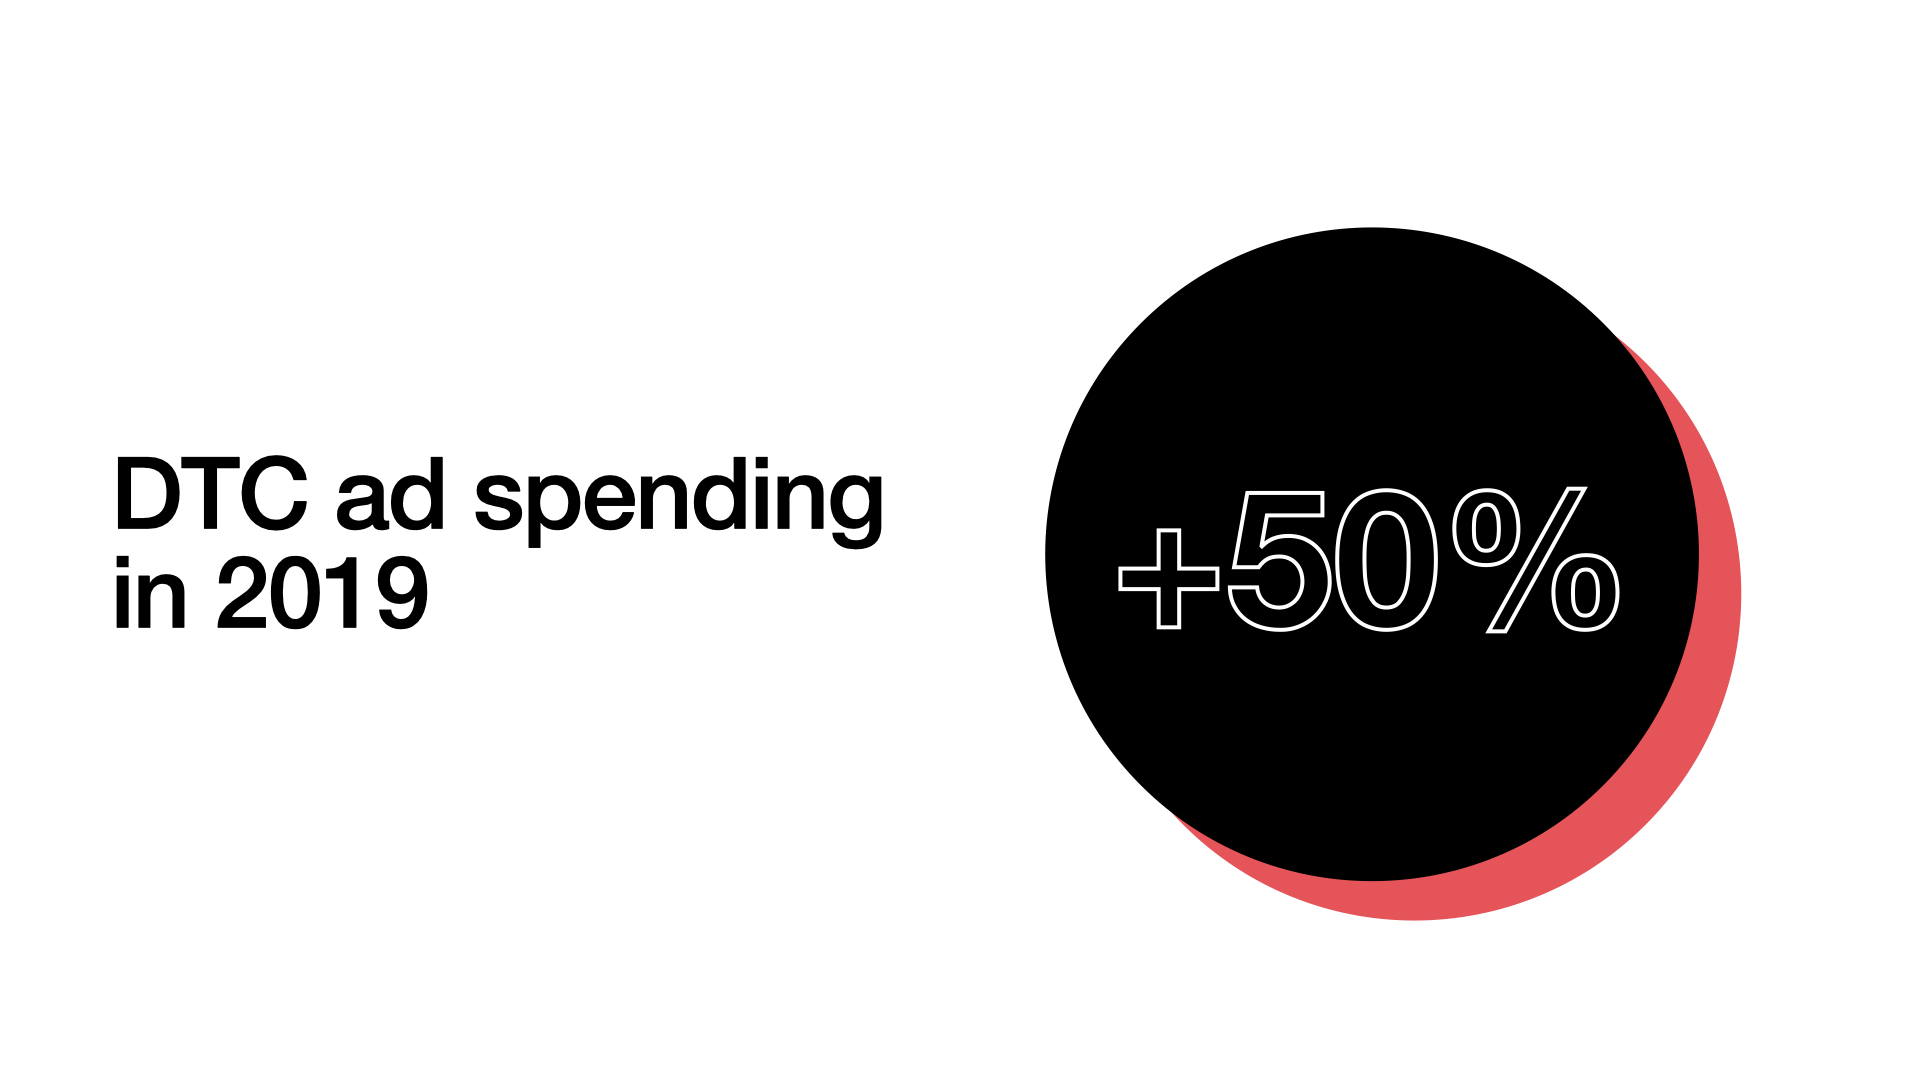 G & Co. is a DTC digital agency: DTC ad spending in 2019 shot up 50% and is projected to continue rising